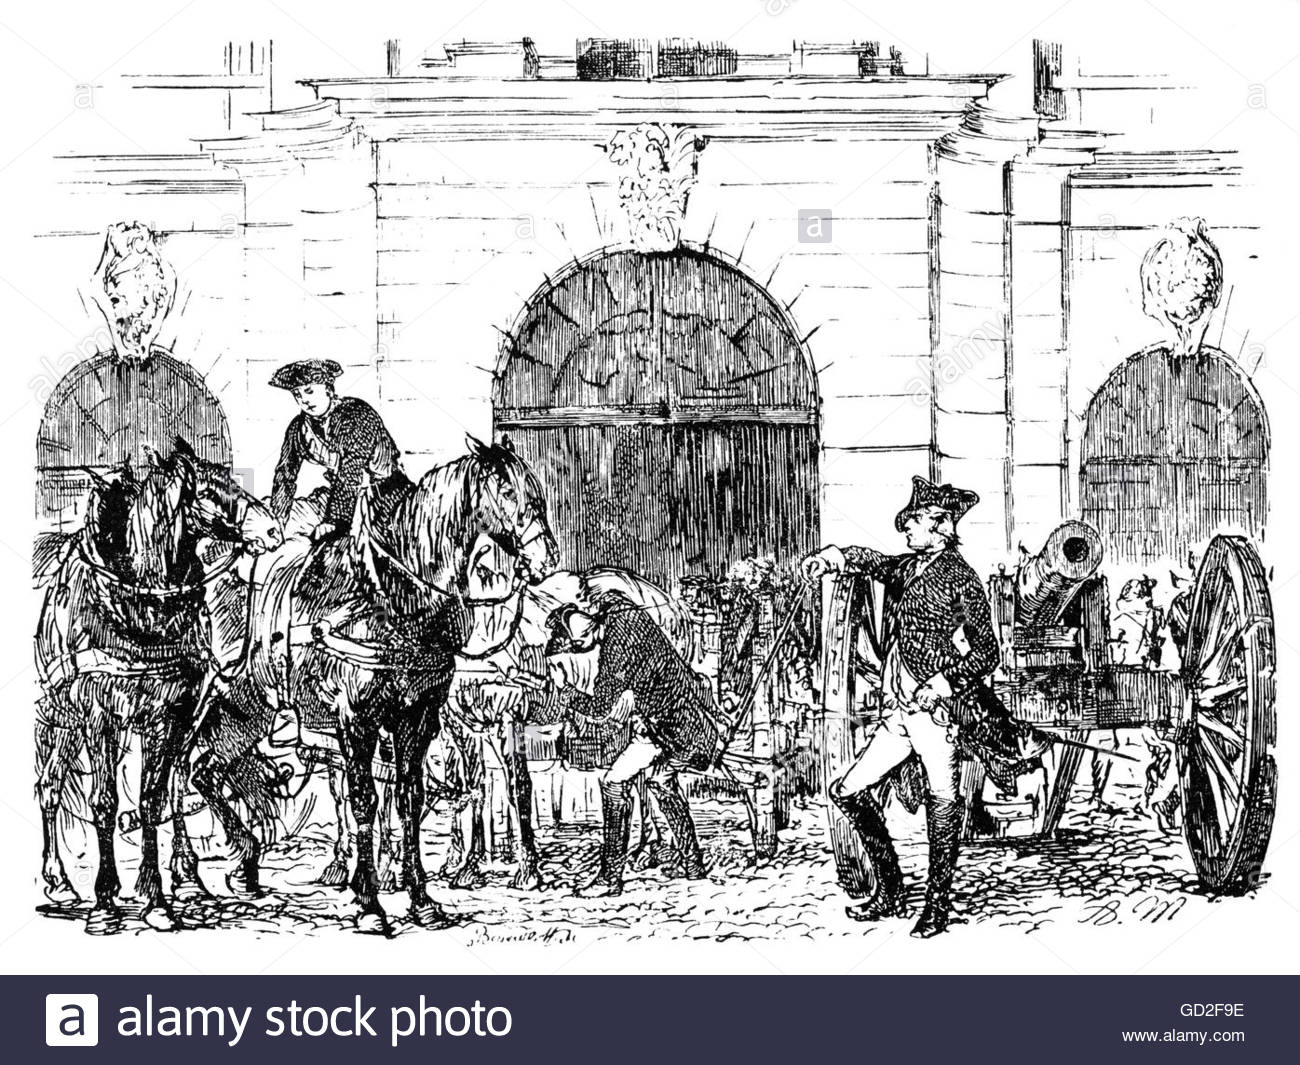 military, Germany, Prussia, army, artillery, Berlin Armoury, um circa 1775, wood engraving by Adolph Menzel, 'Geschichte - Stock Image